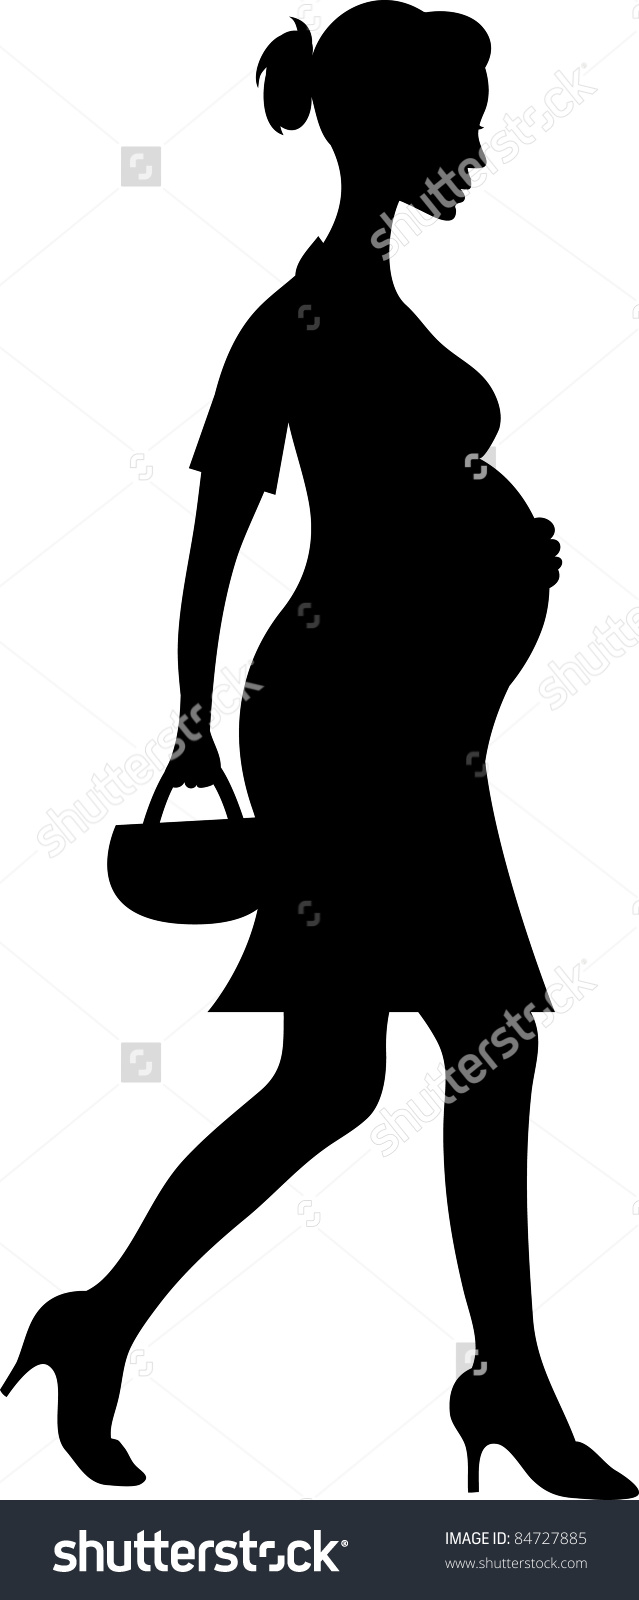 Witches clipart pregnant. Mom silhouette at getdrawings